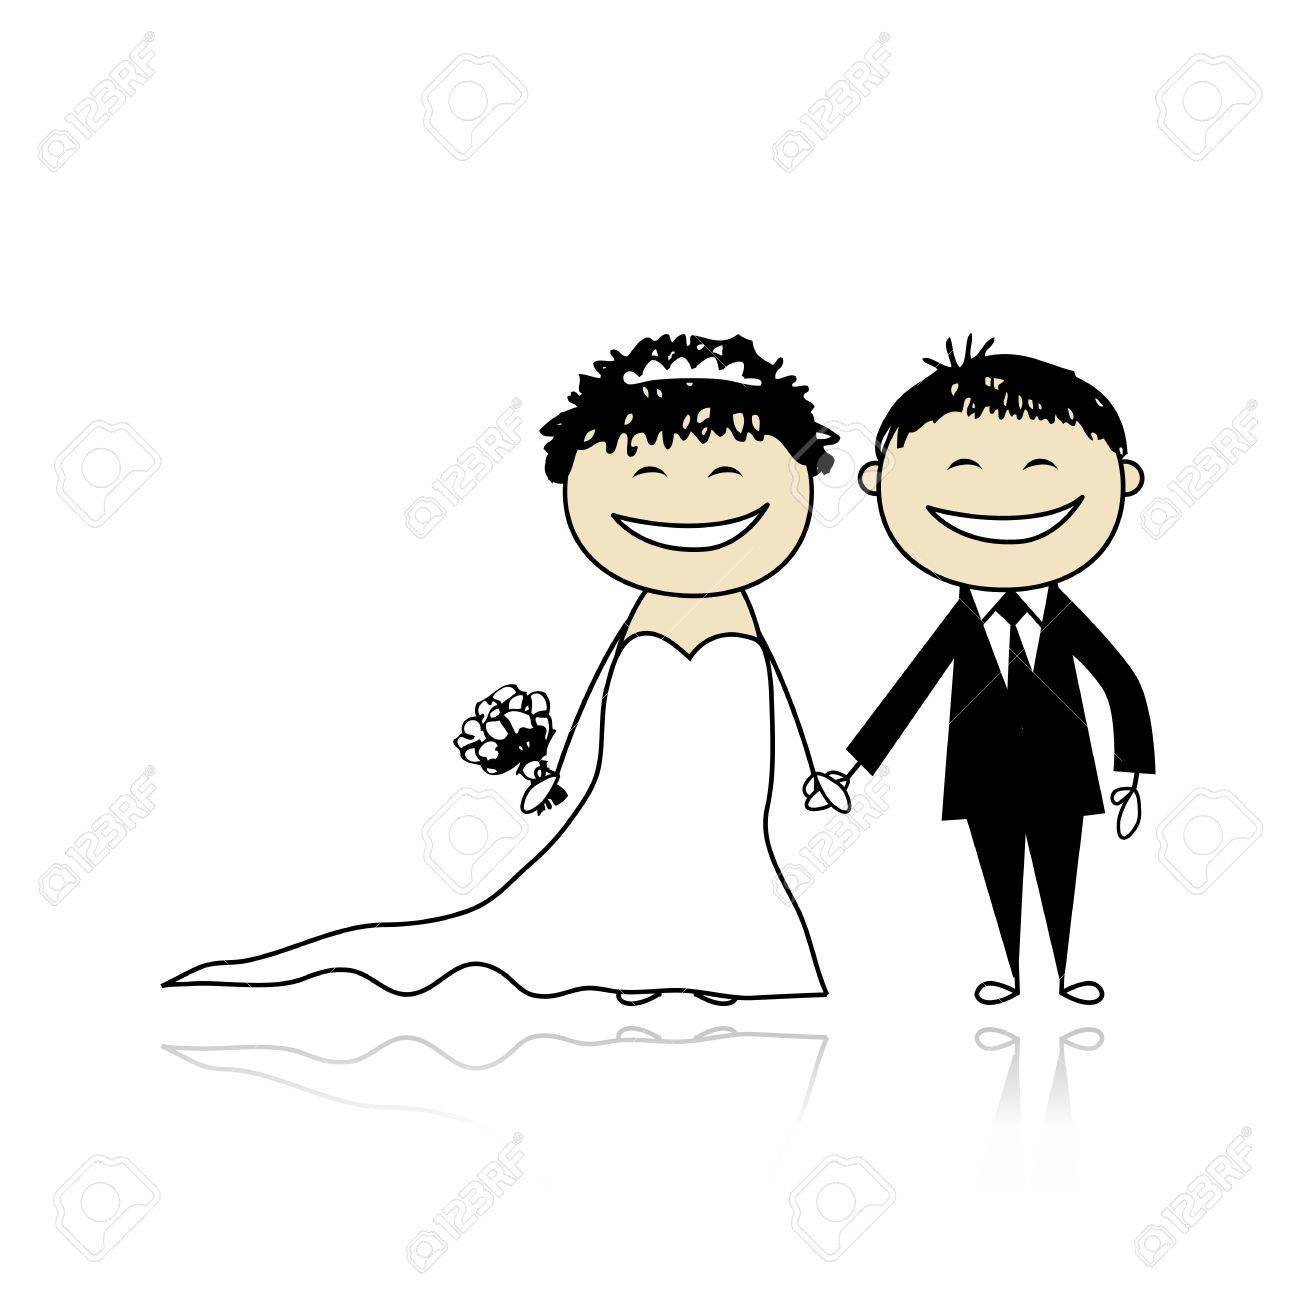 Wedding ceremony - bride and groom together for your design Stock Vector - 9348526